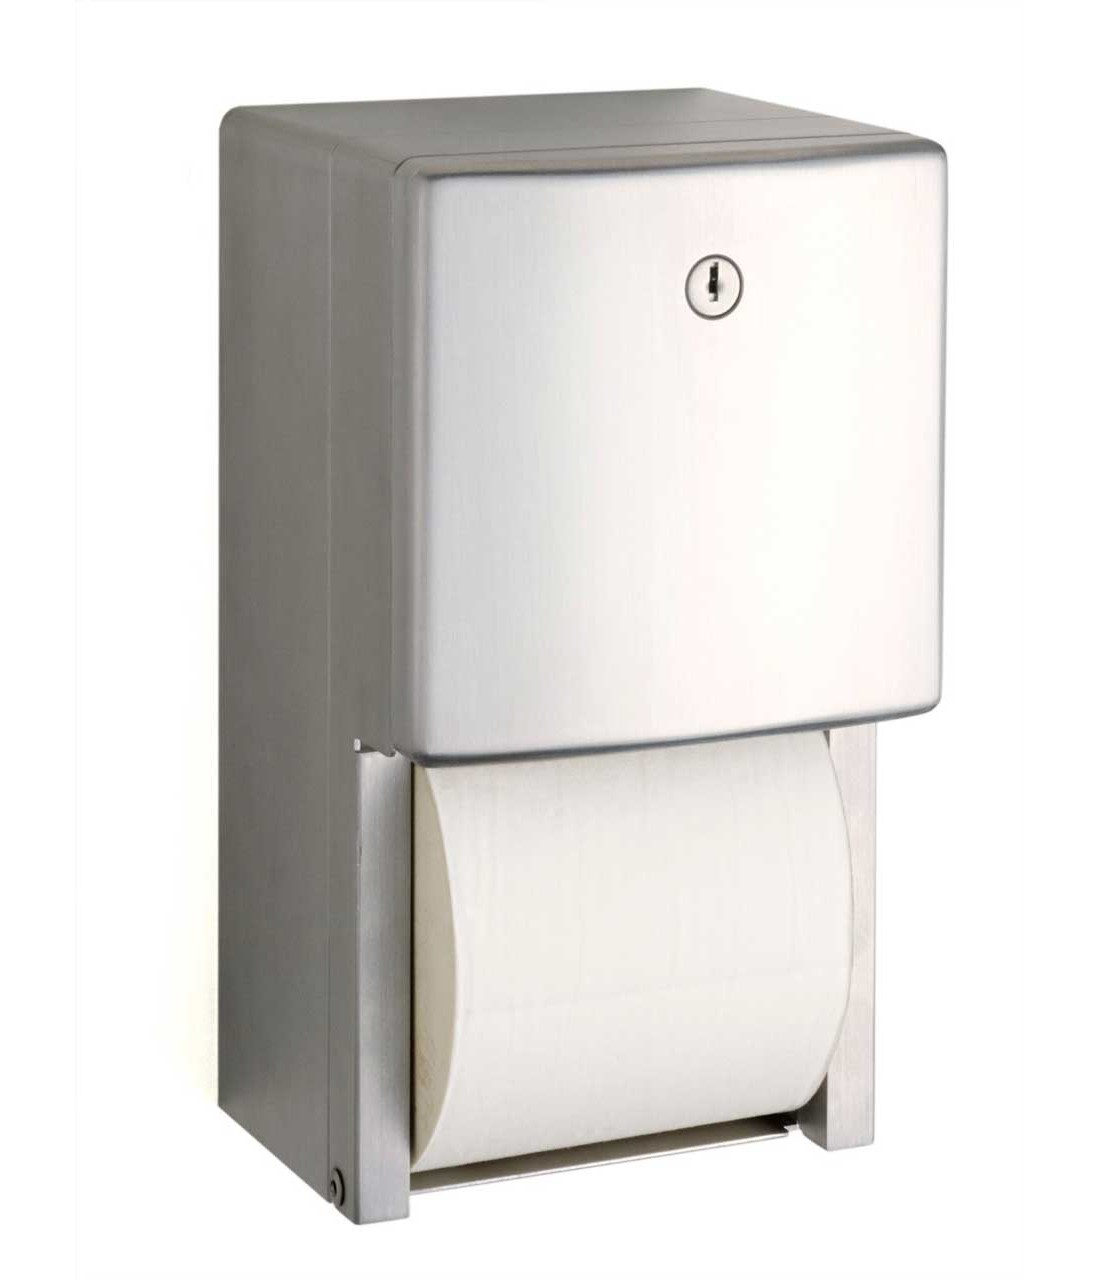 Tp Dispenser Bobrick B4288 Toilet Paper Dispenser Toilet Tissue Multi Roll